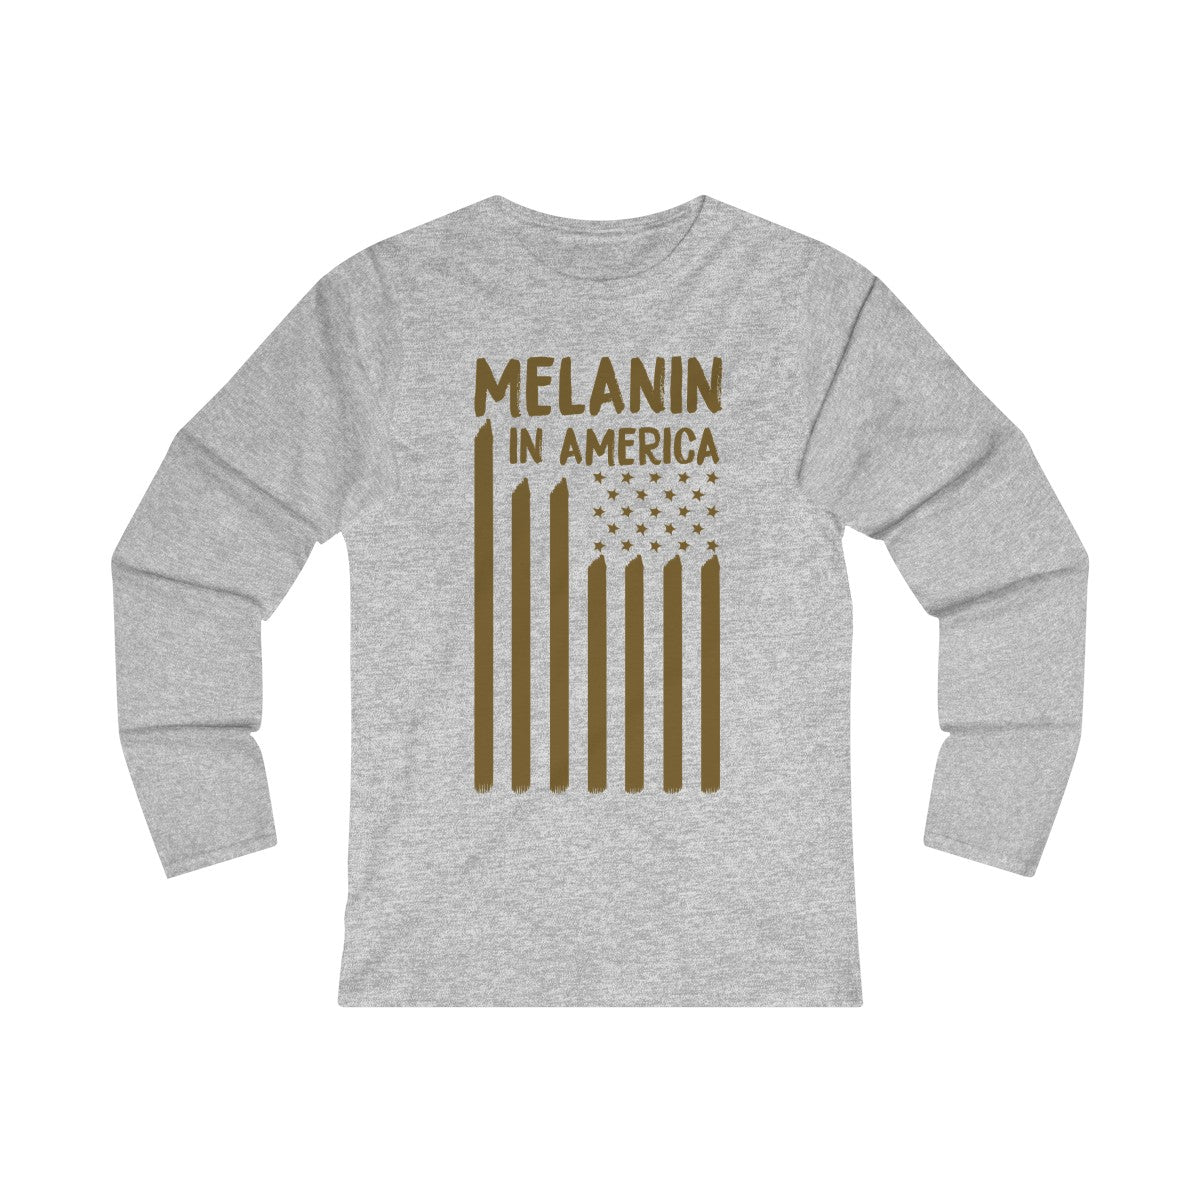 Melanin in America Women's Fitted Long Sleeve Tee